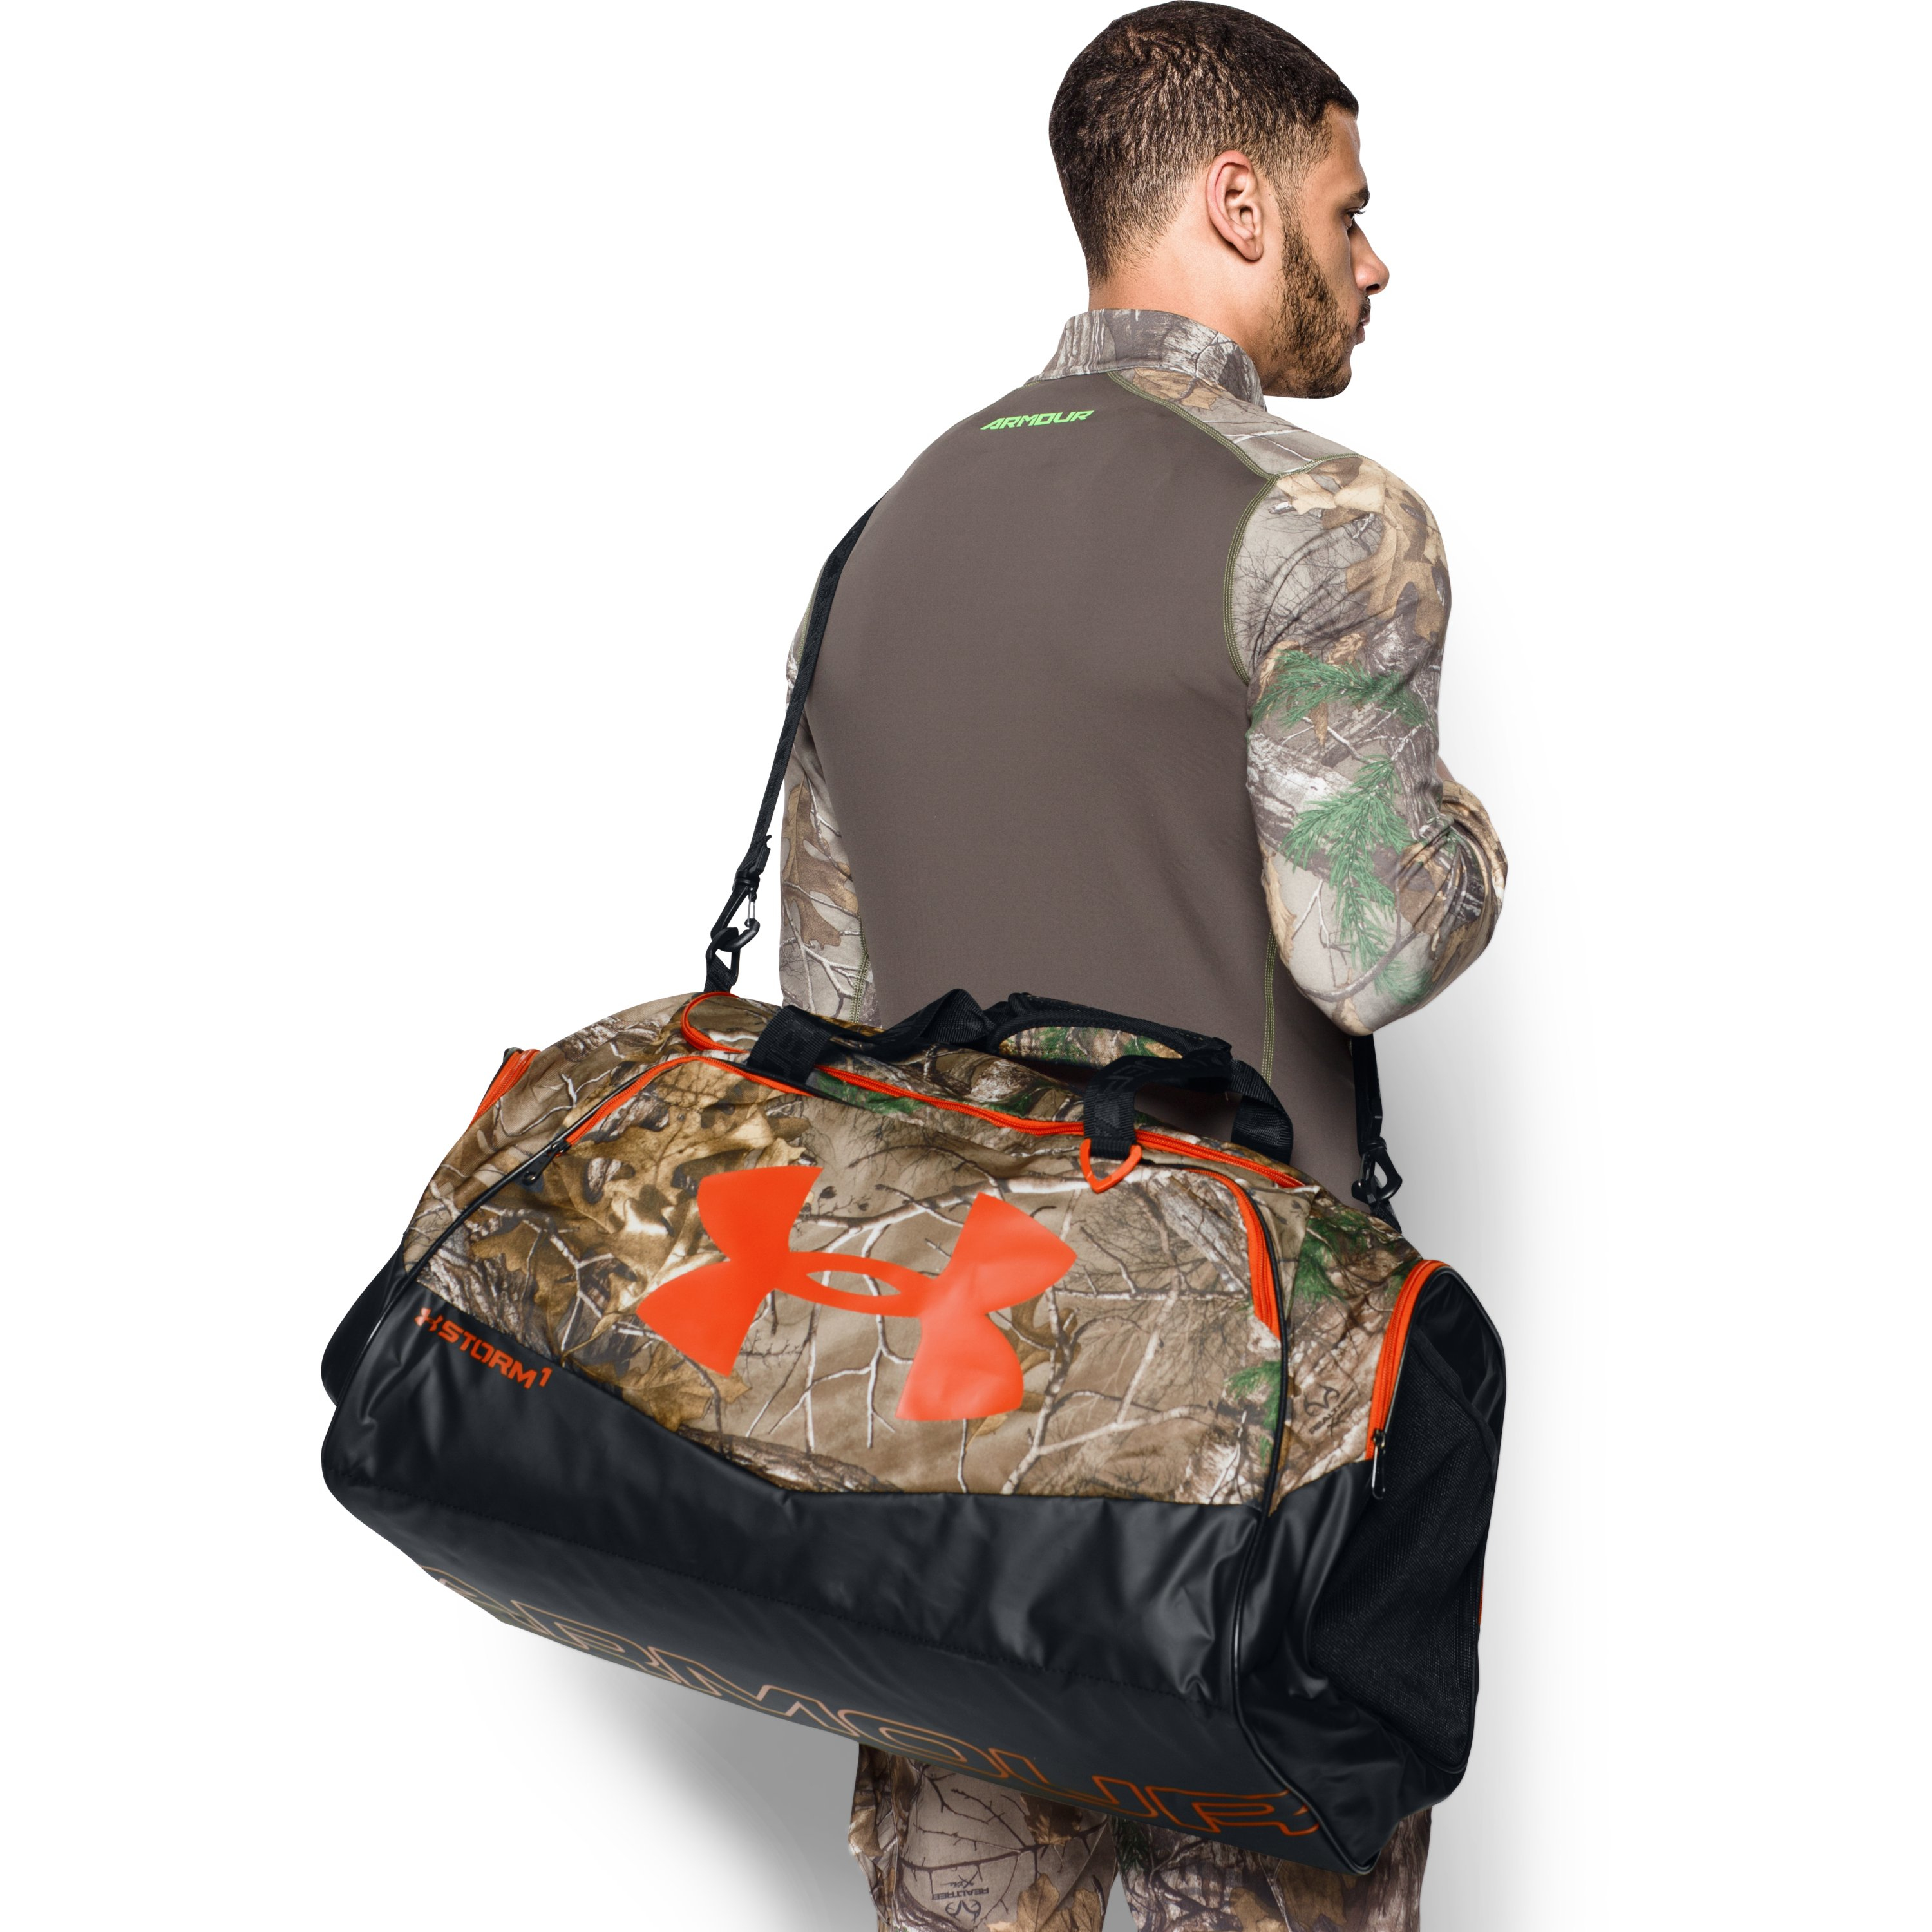 4912117a18a5 Under Armour Hunting Duffel Bag